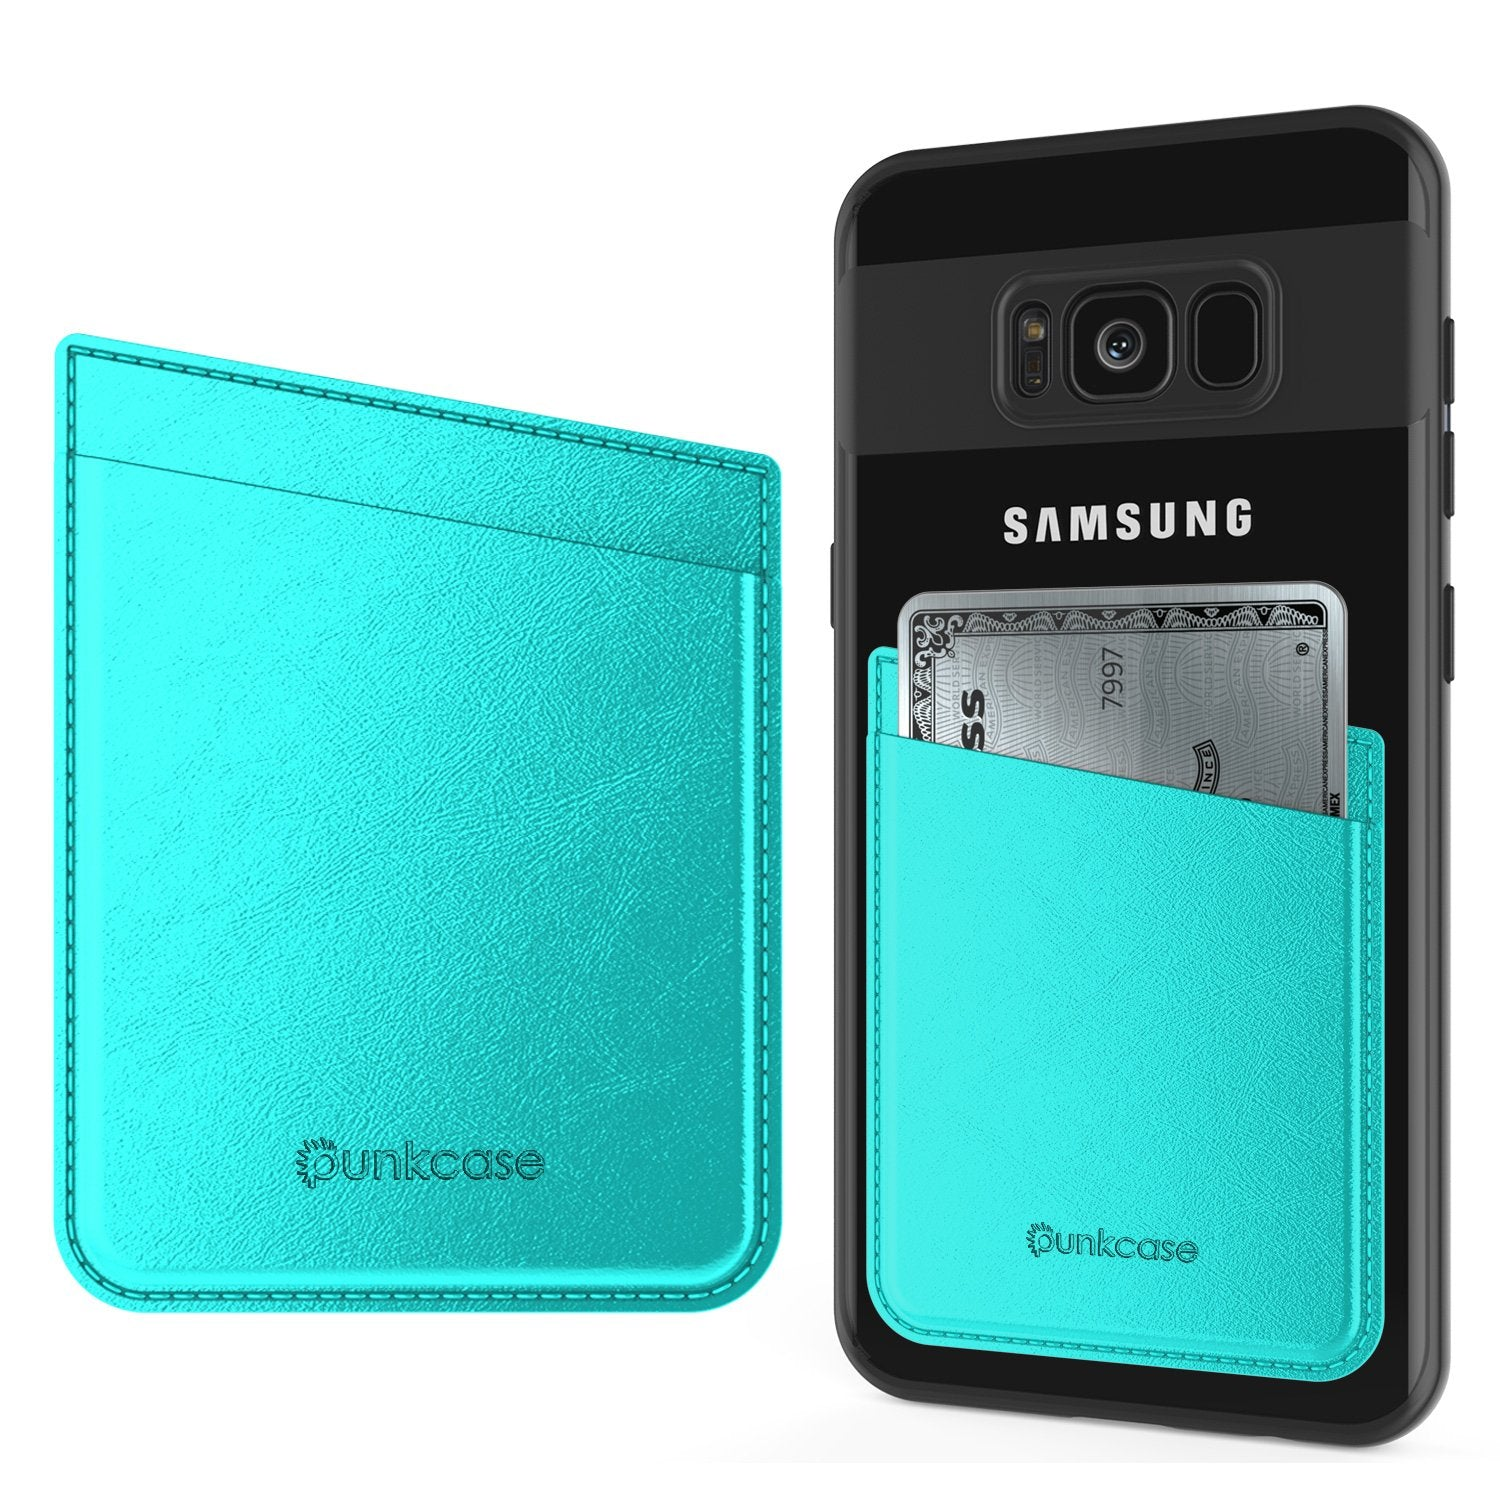 PunkCase CardStud Deluxe Stick On Wallet | Adhesive Card Holder Attachment for Back of iPhone, Android & More | Leather Pouch | [Teal]